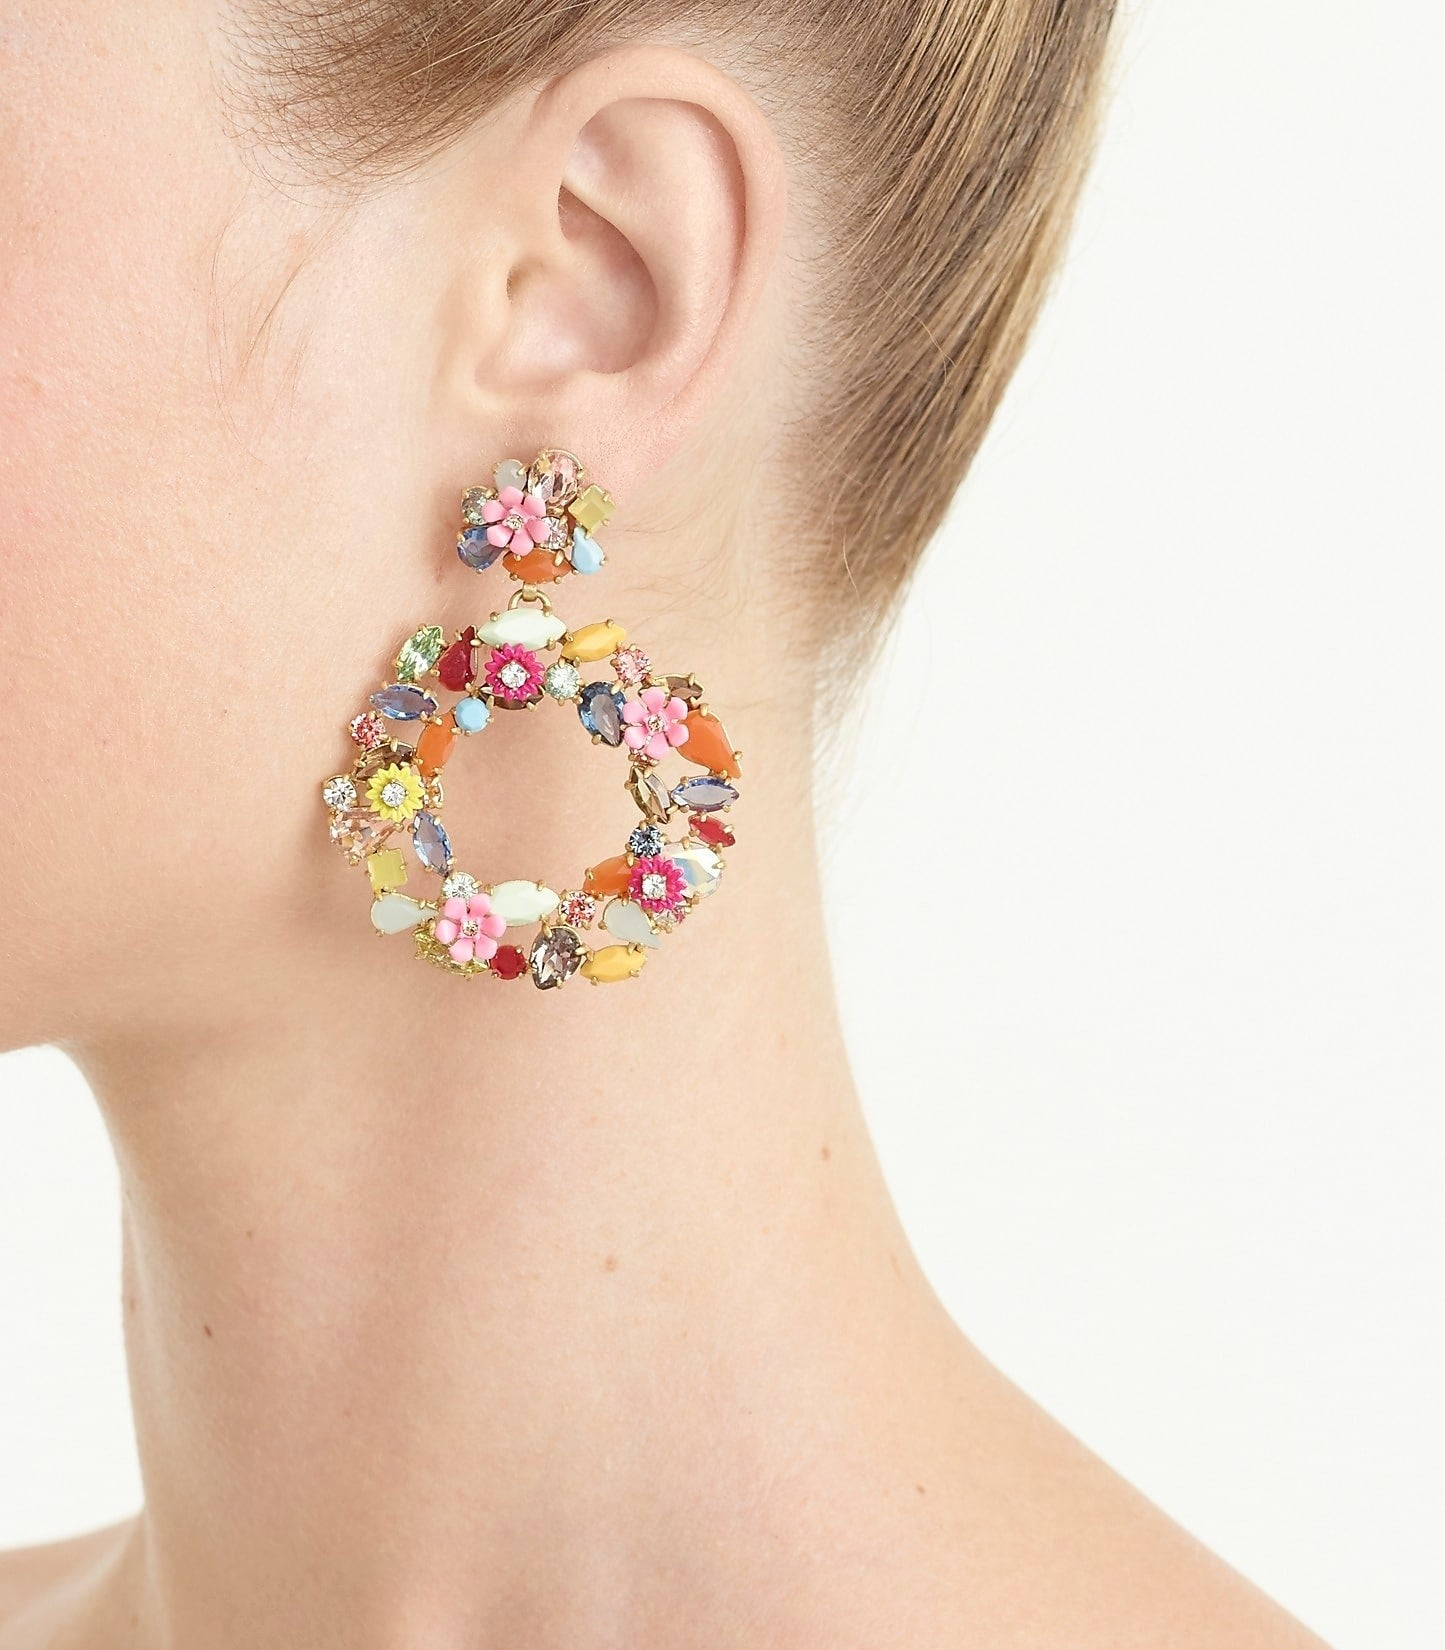 A model wearing the colorful gemstone and flower circle drop earrings